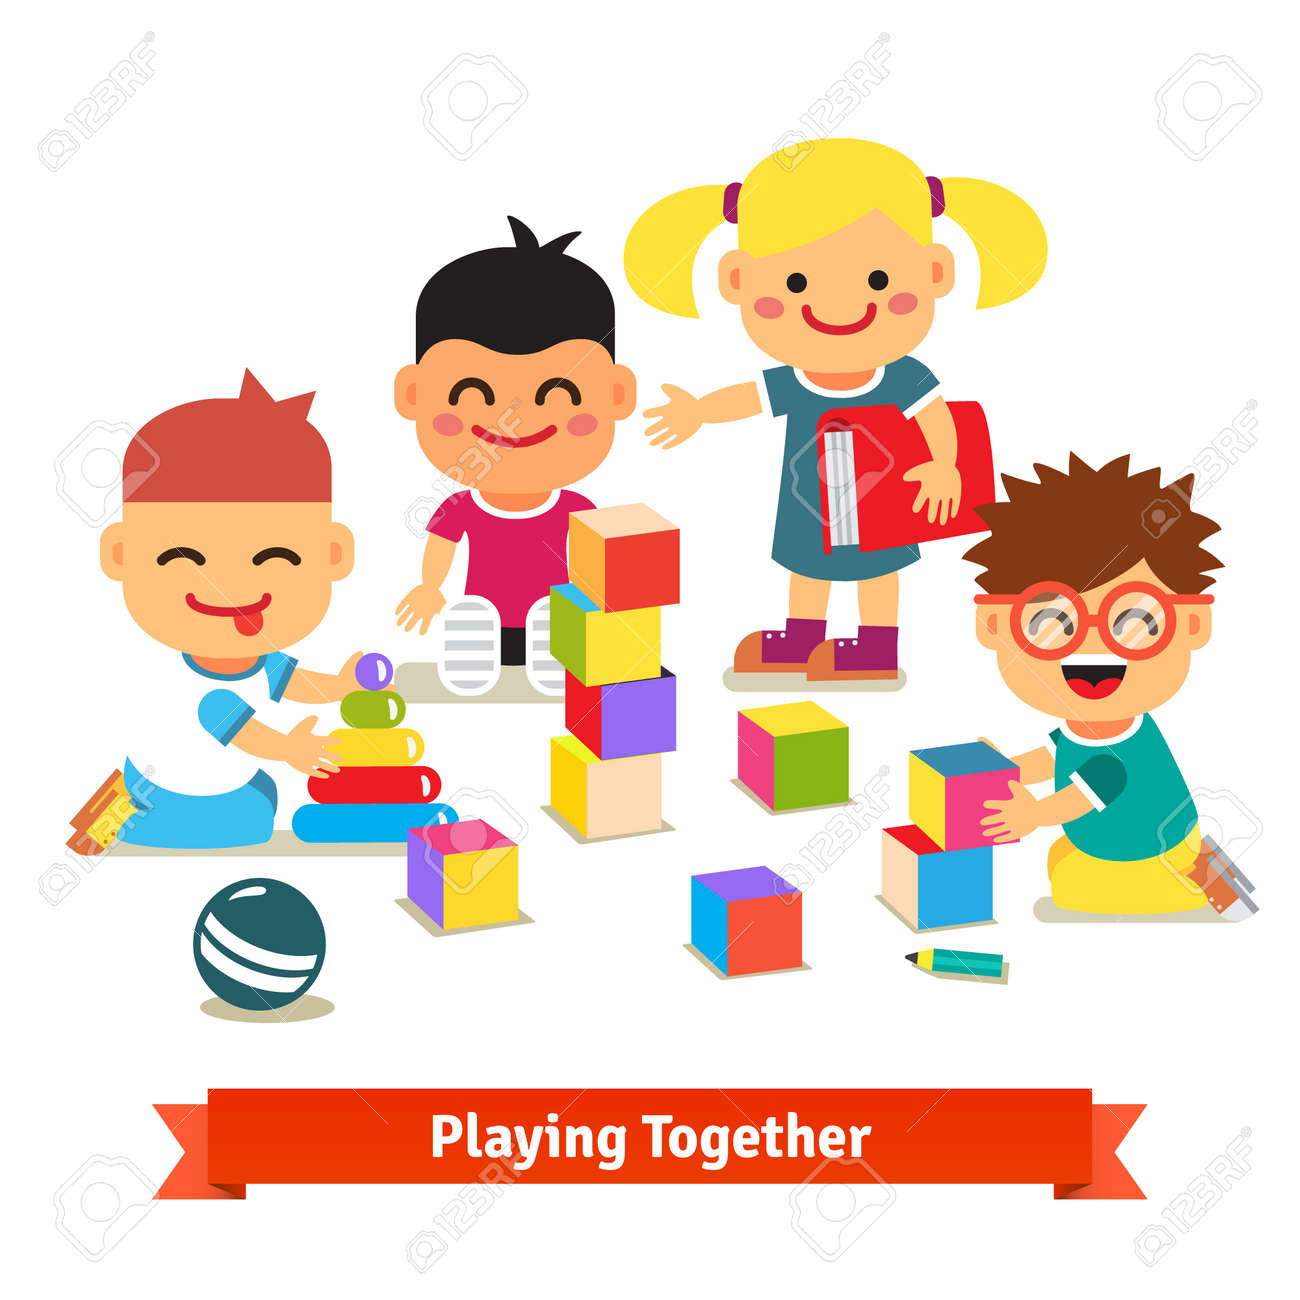 Kids Playing With Bricks And Toys Together In Kindergarten Room